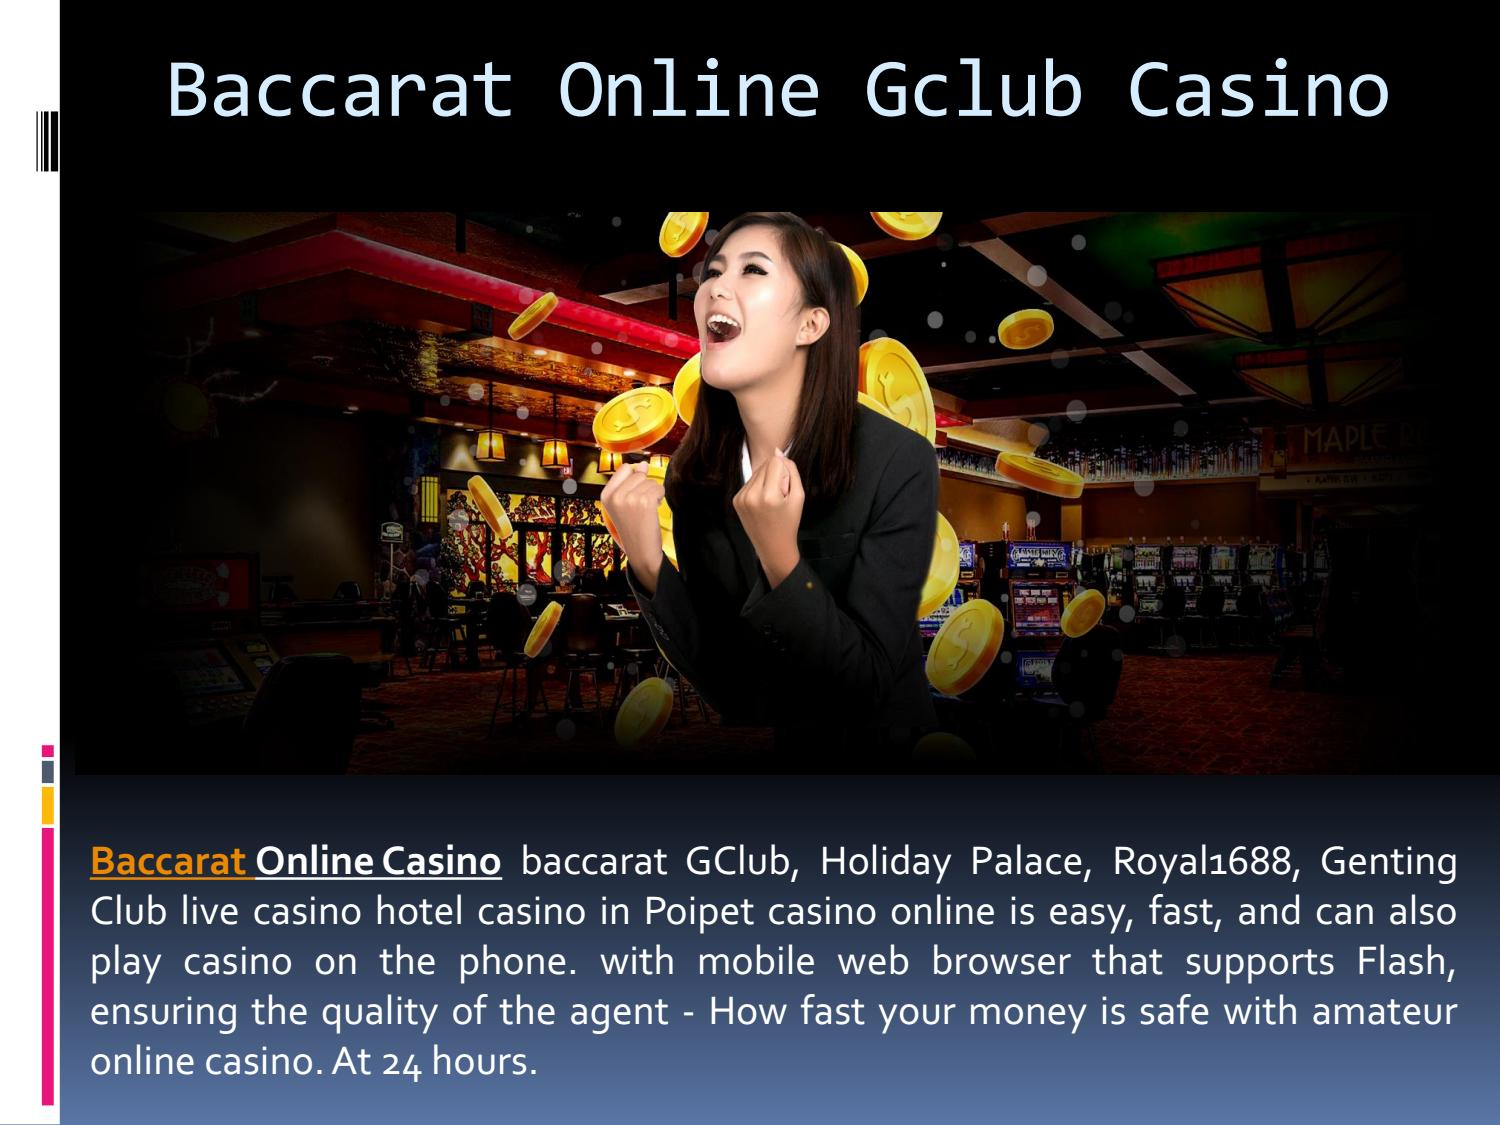 Royal1688 casino online online rescue team 2 game